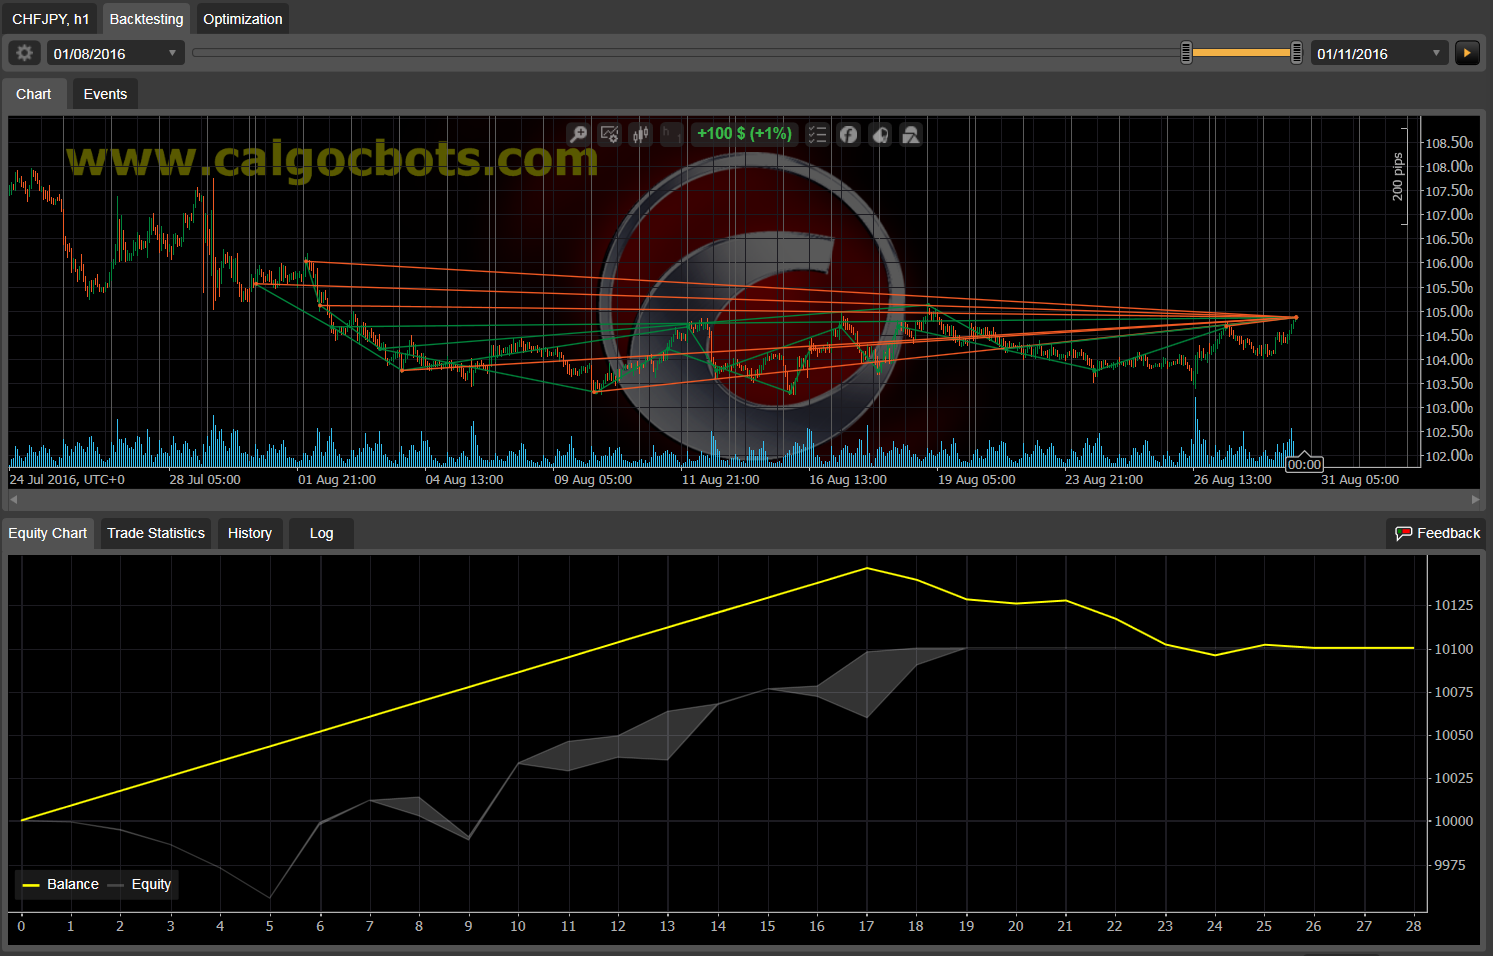 Dual Grid Hedge CHF JPY 1h cAlgo cBots cTrader 1k 100 45 90 - 13